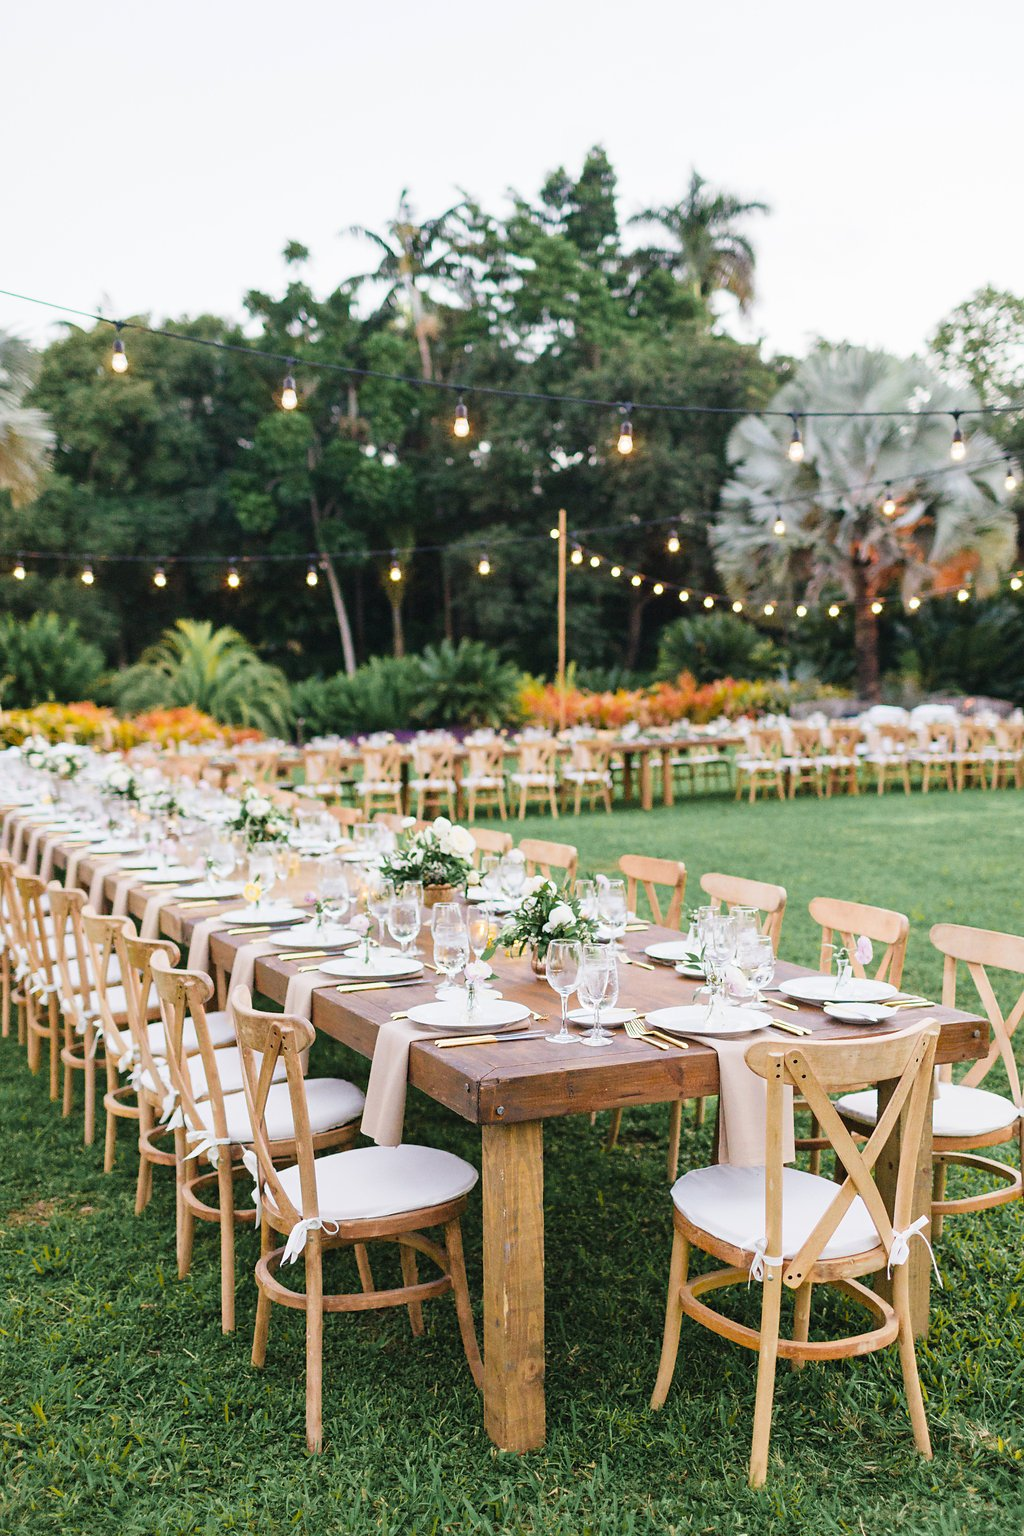 2019 wedding trends | Intimate wedding at Fairchild Tropical Botanic Garden